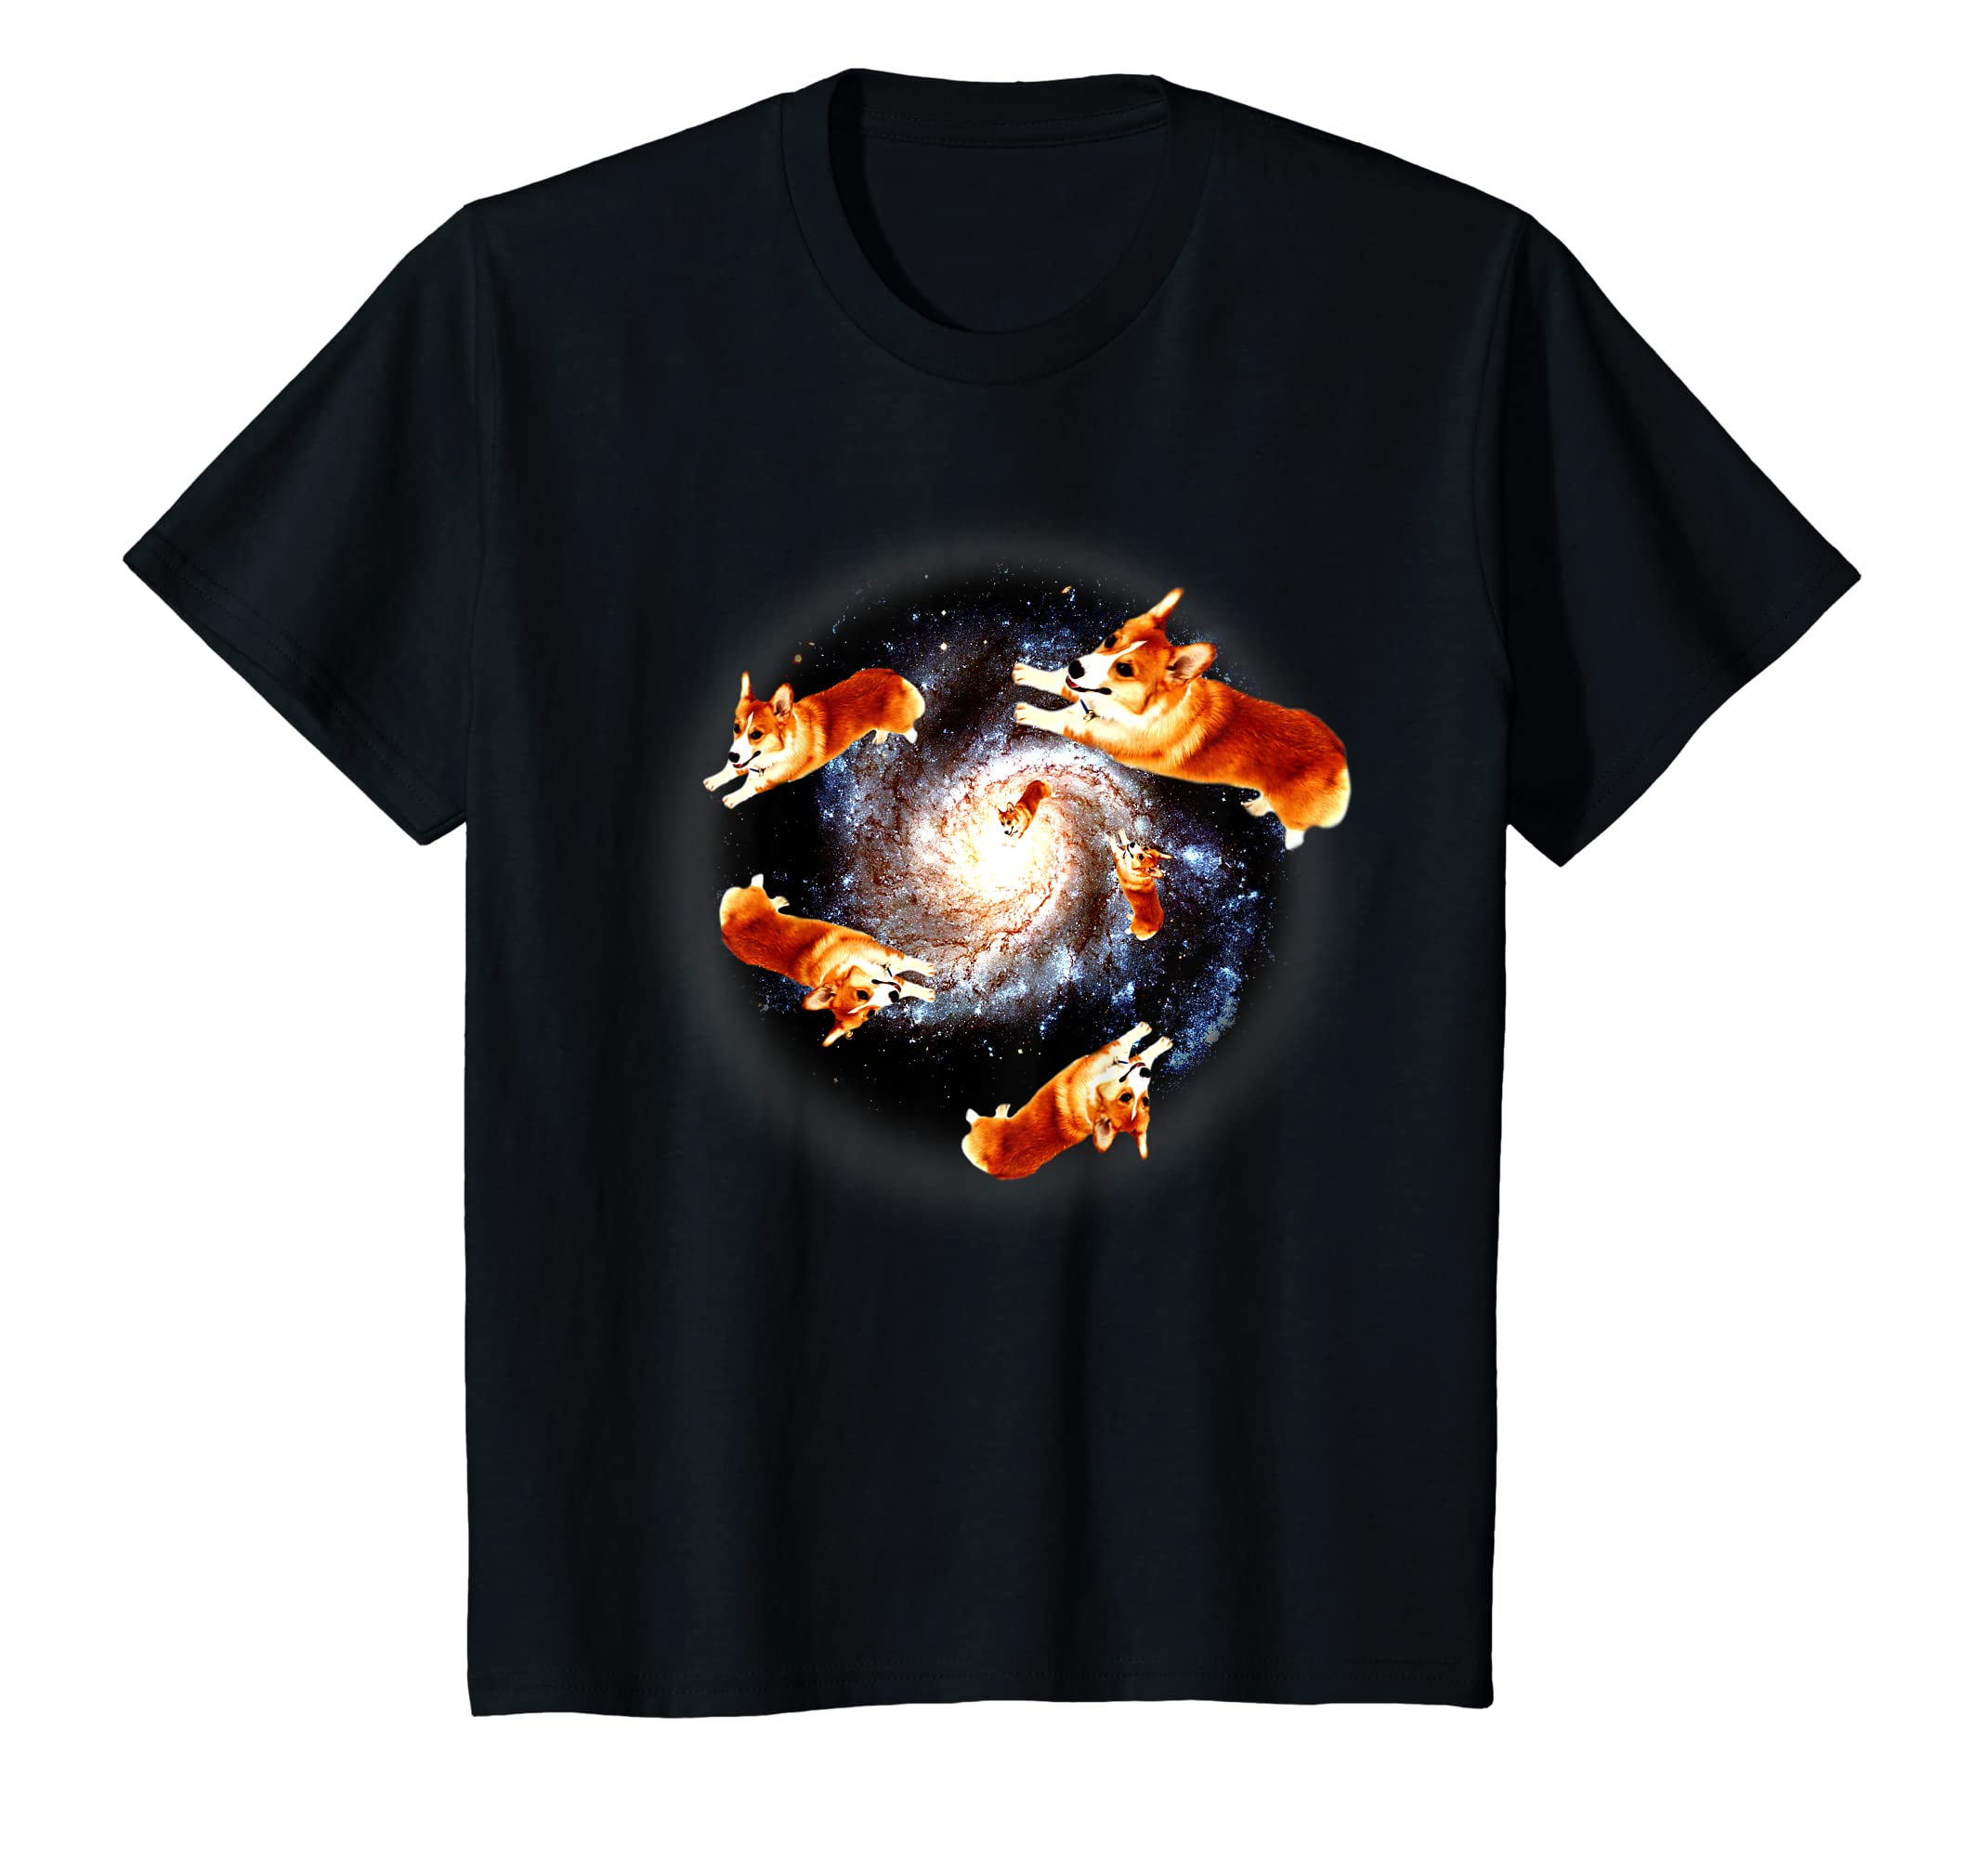 681c80d3 Amazon.com: Corgi Galaxy - Funny T Shirt Gift for Men Women Boys & Girls:  Clothing